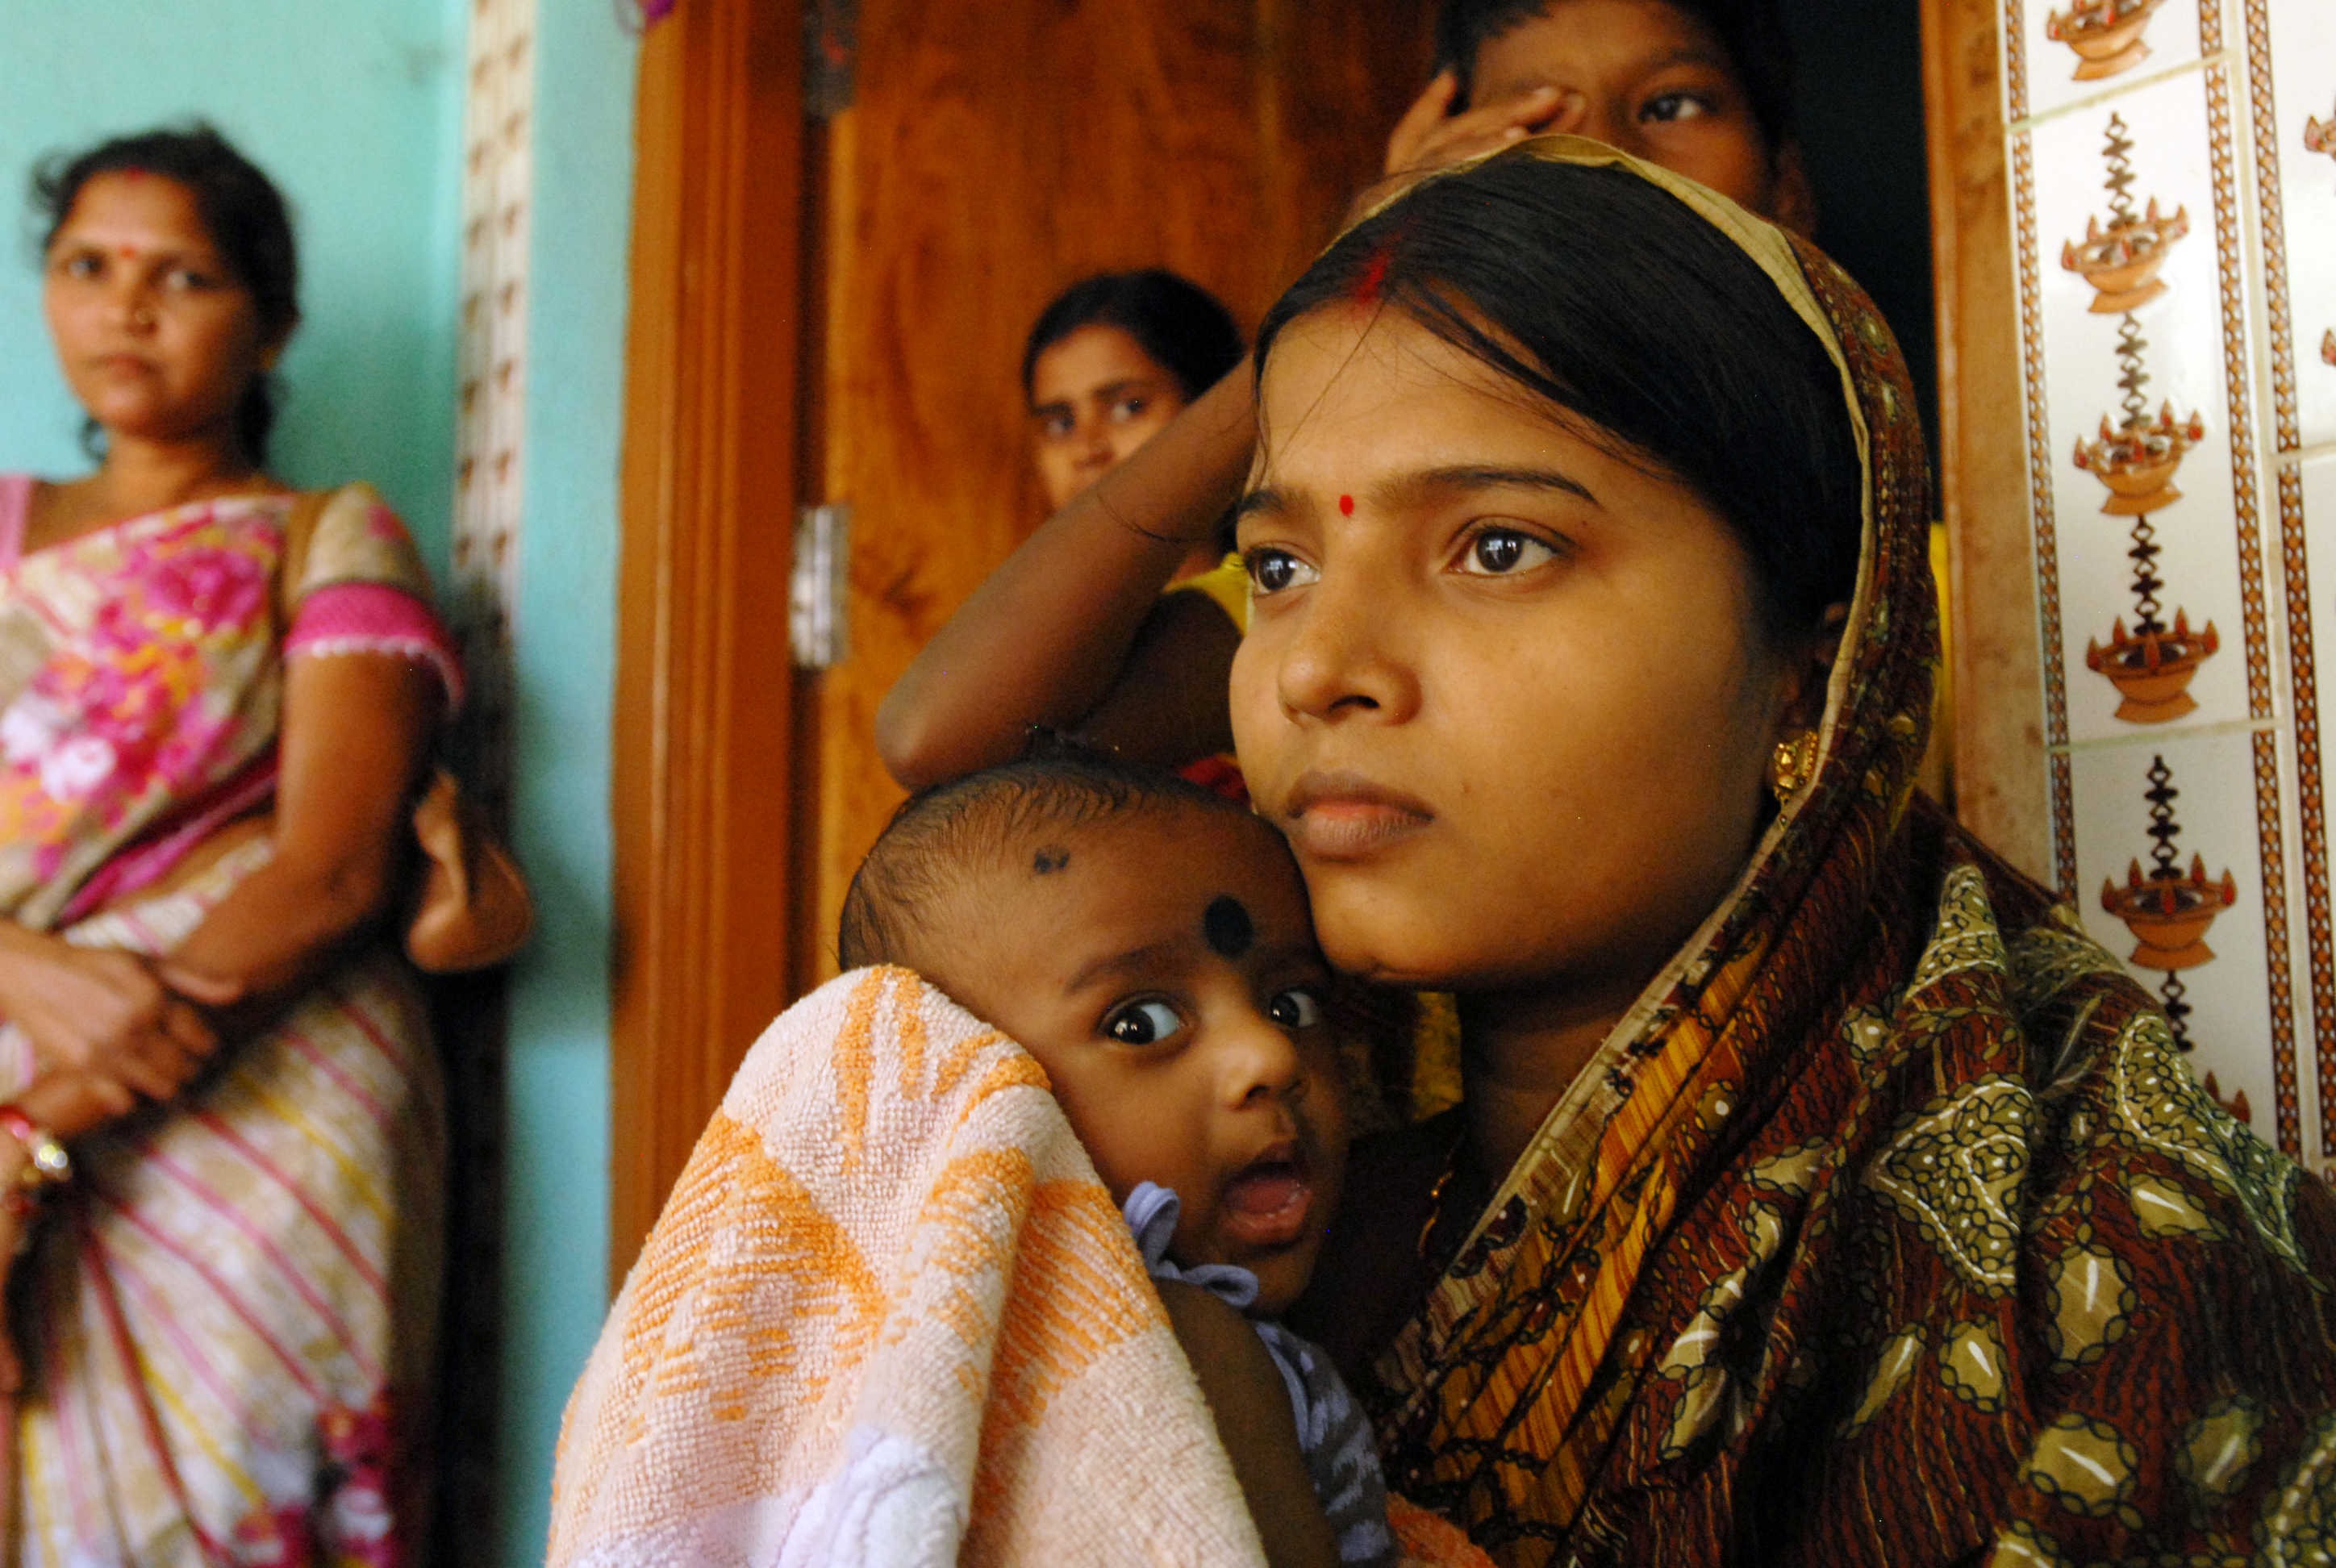 Changing_lives_Ante_and_post_natal_care_for_mums_and_babies_in_Orissa_6835364123